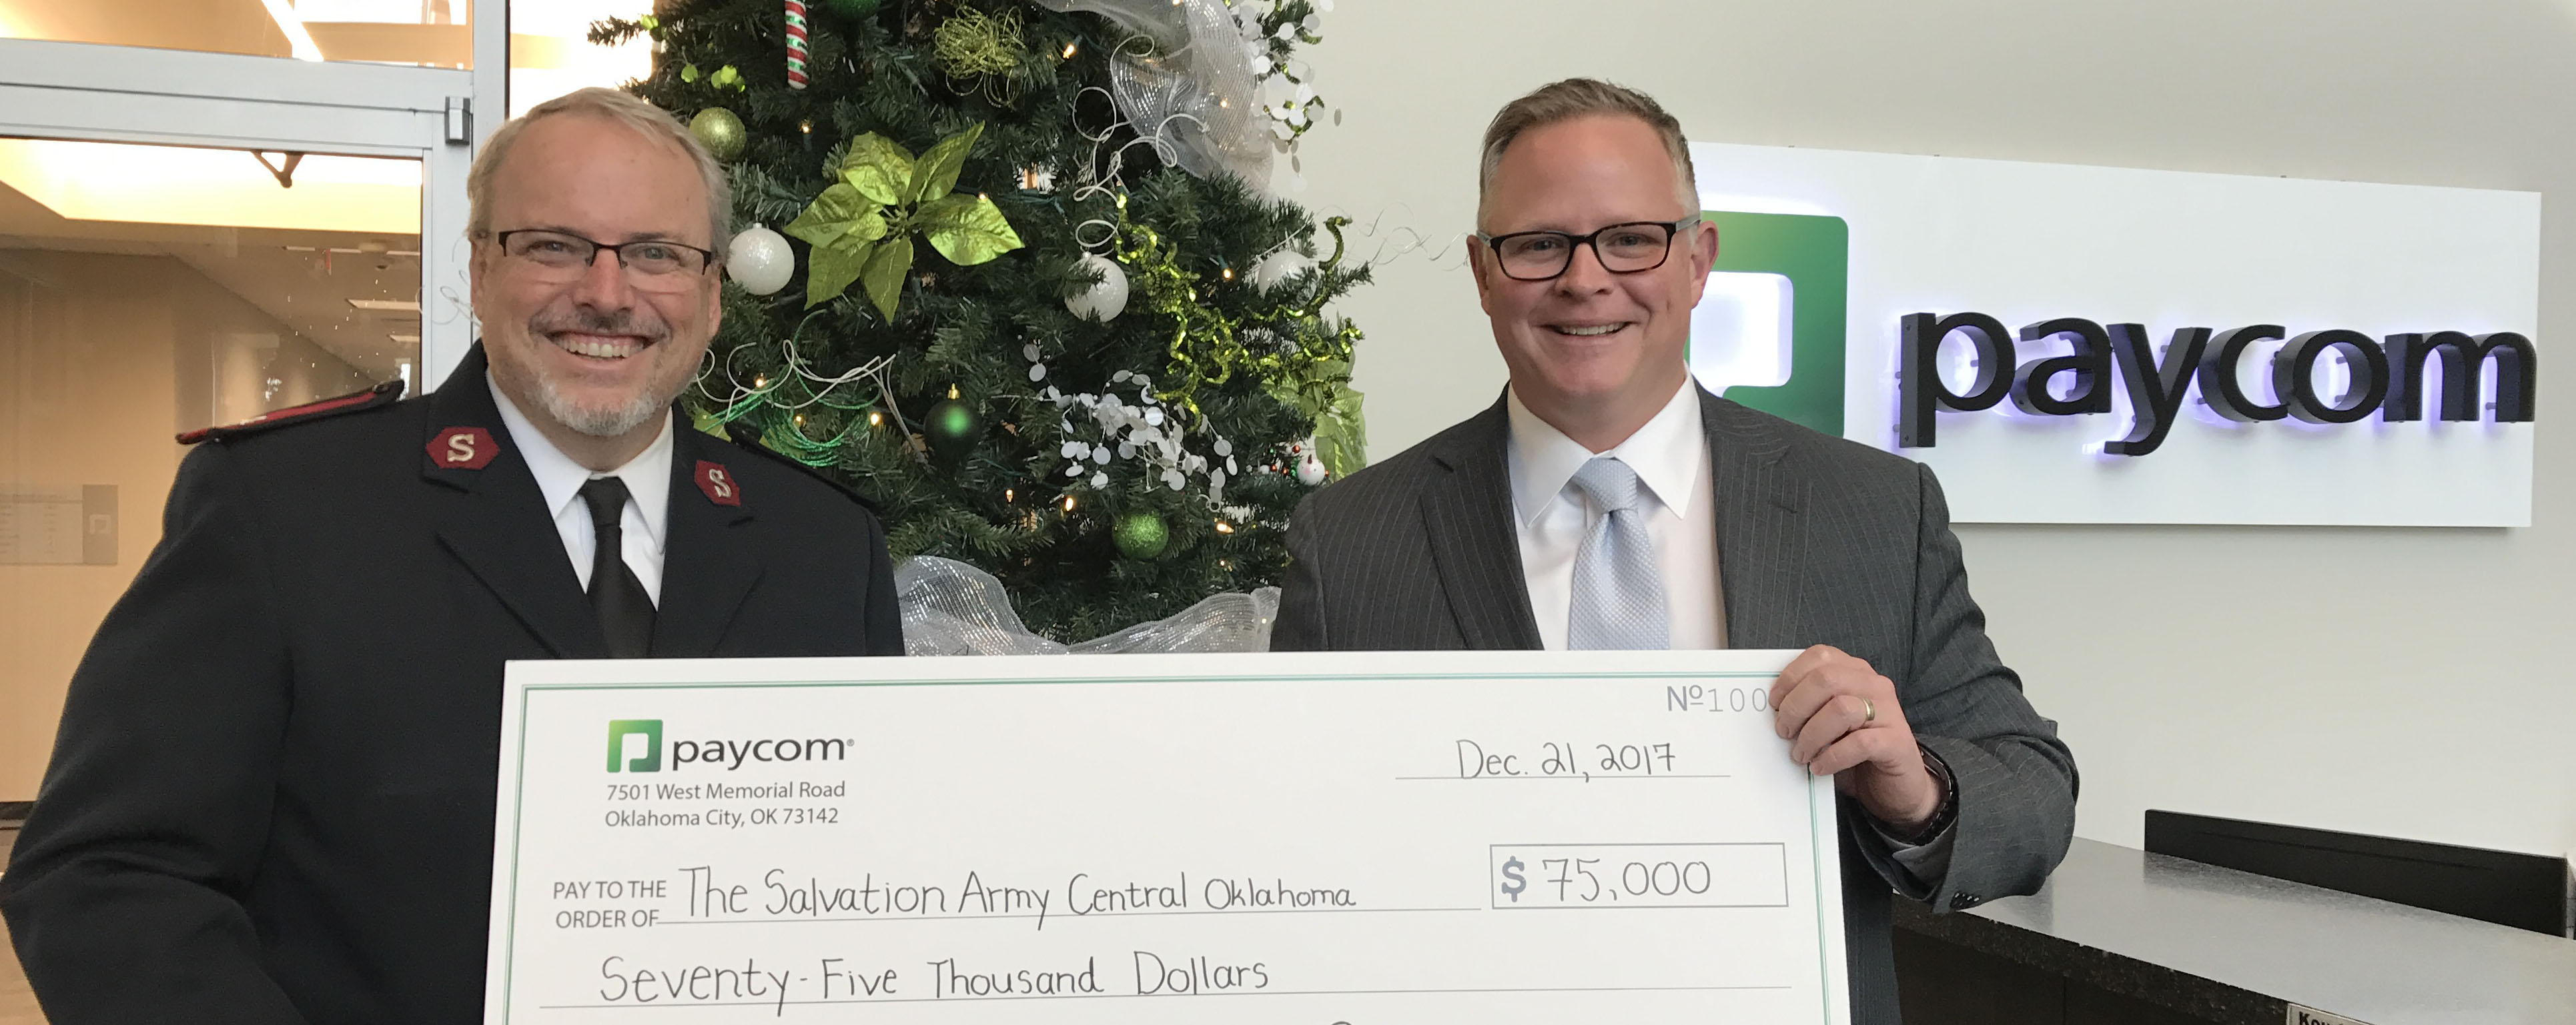 Paycom and its Employees Give $75,000 to The Salvation Army